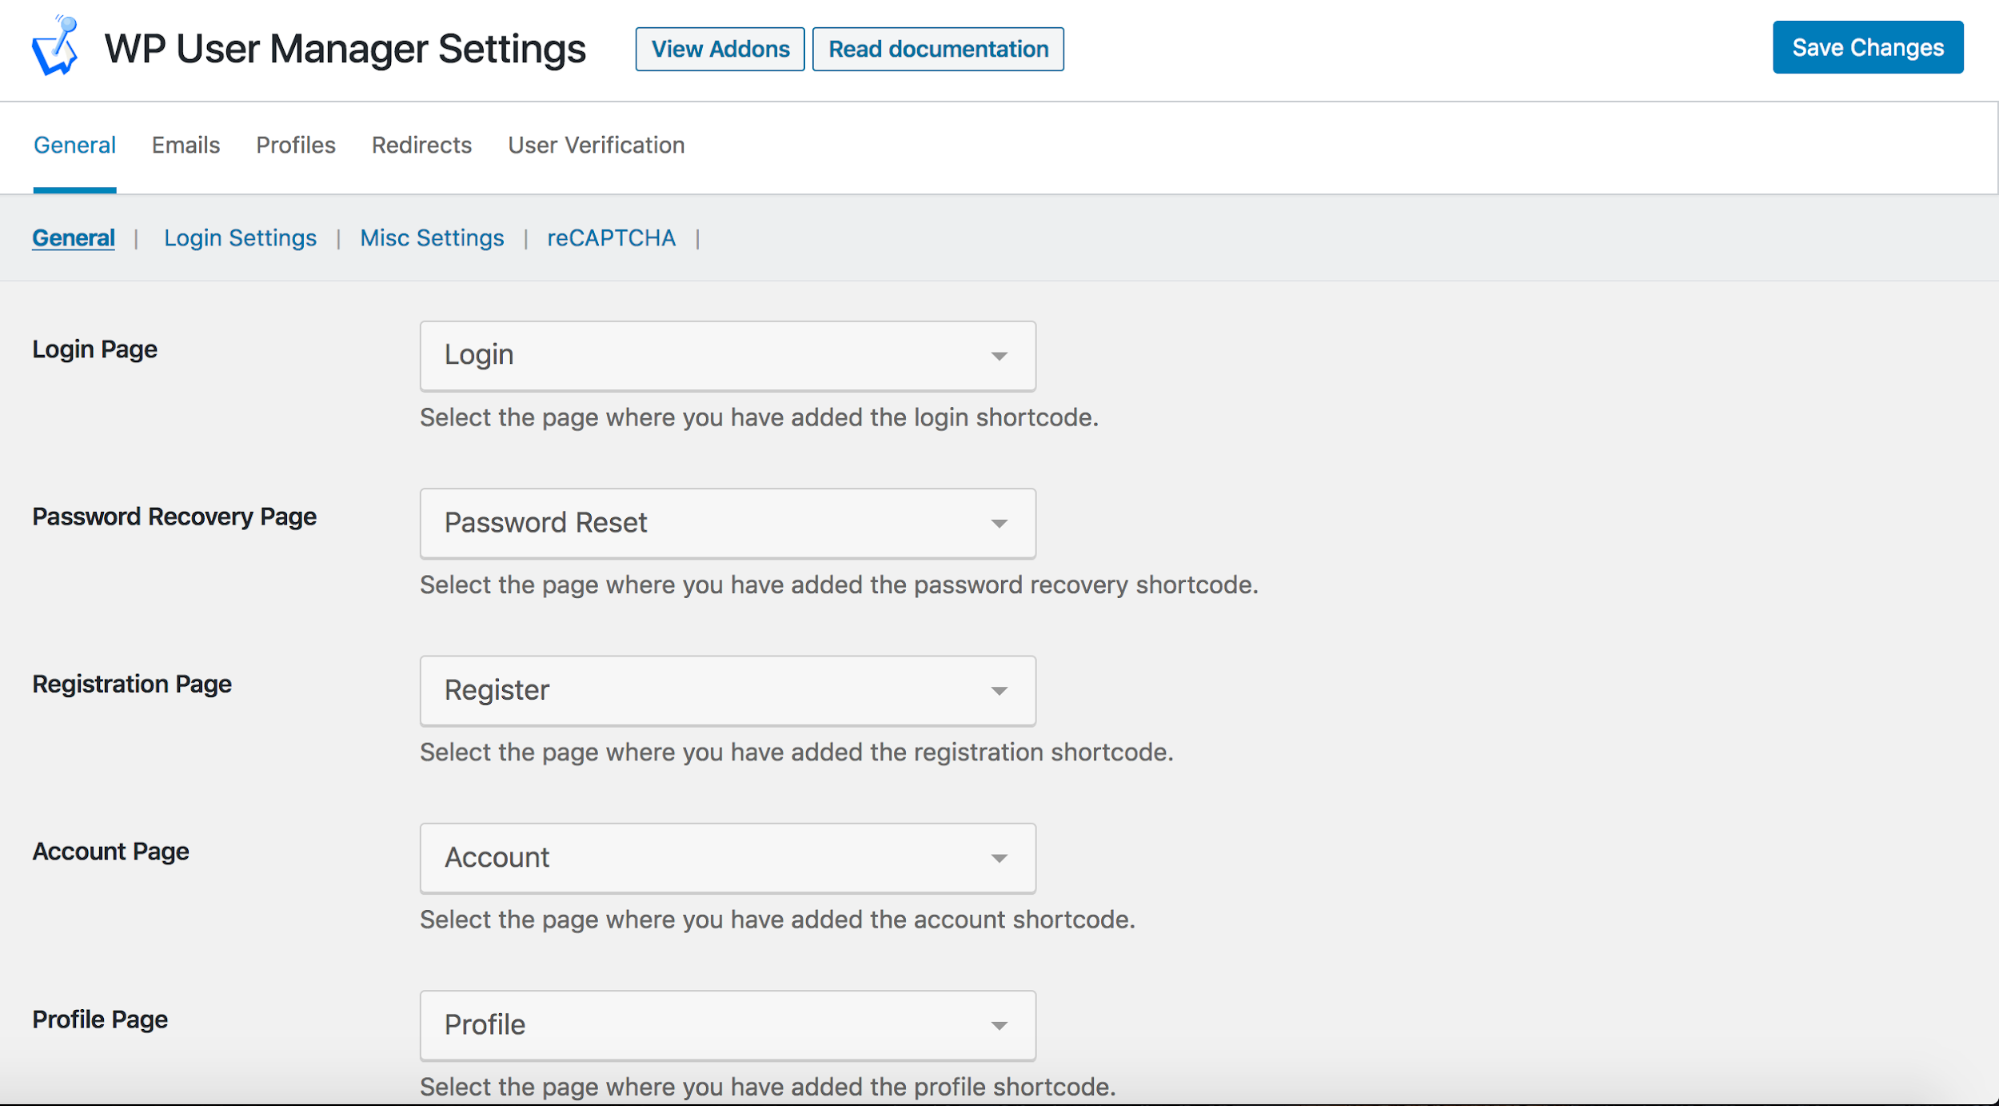 WP User Manager General Settings